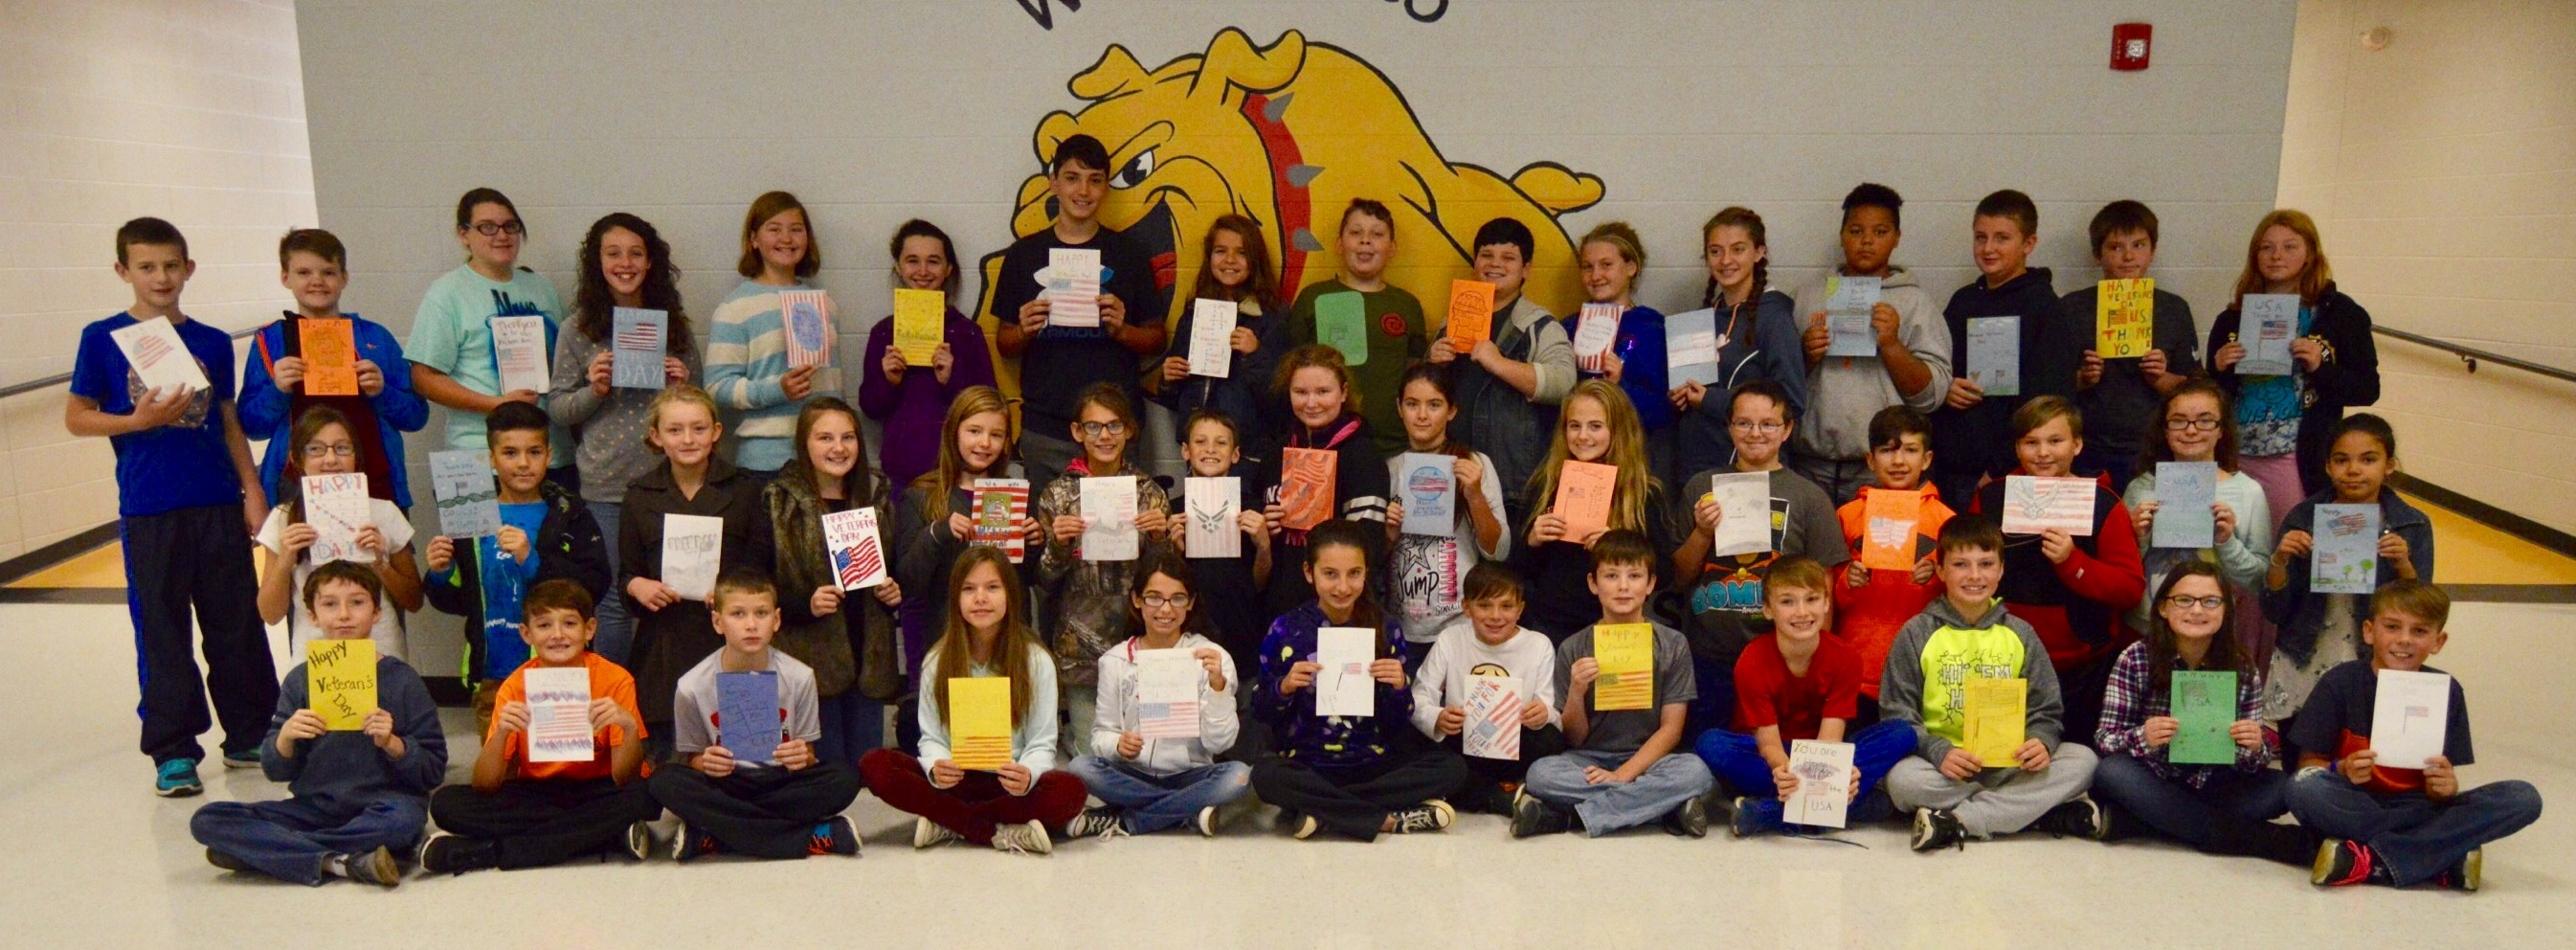 6th Graders show their Veteran's Day cards